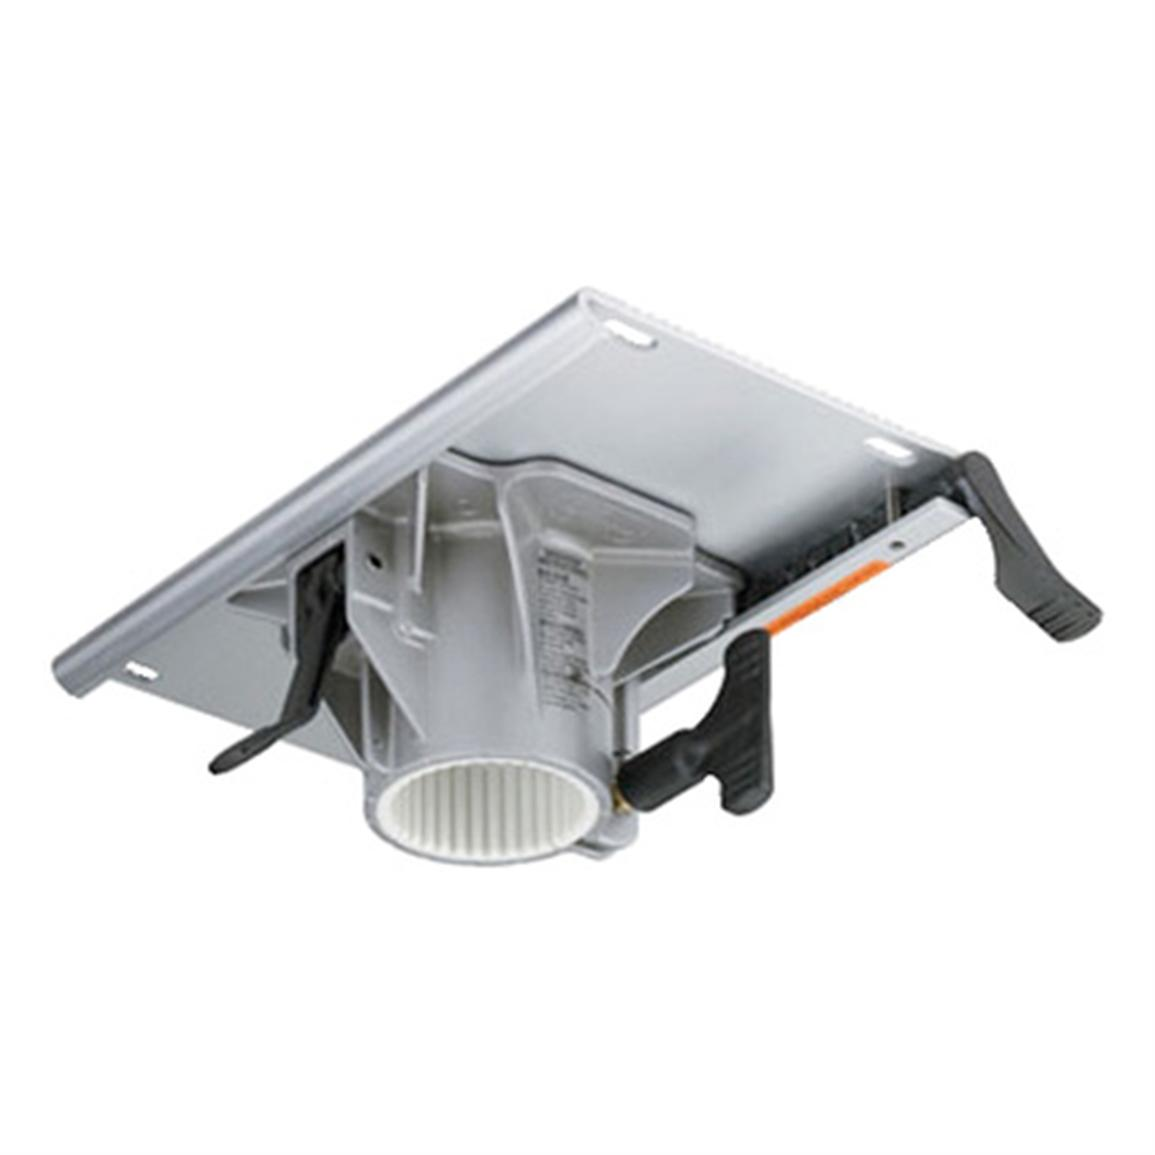 Garelick® Millennium Series Seat Slide and Swivel